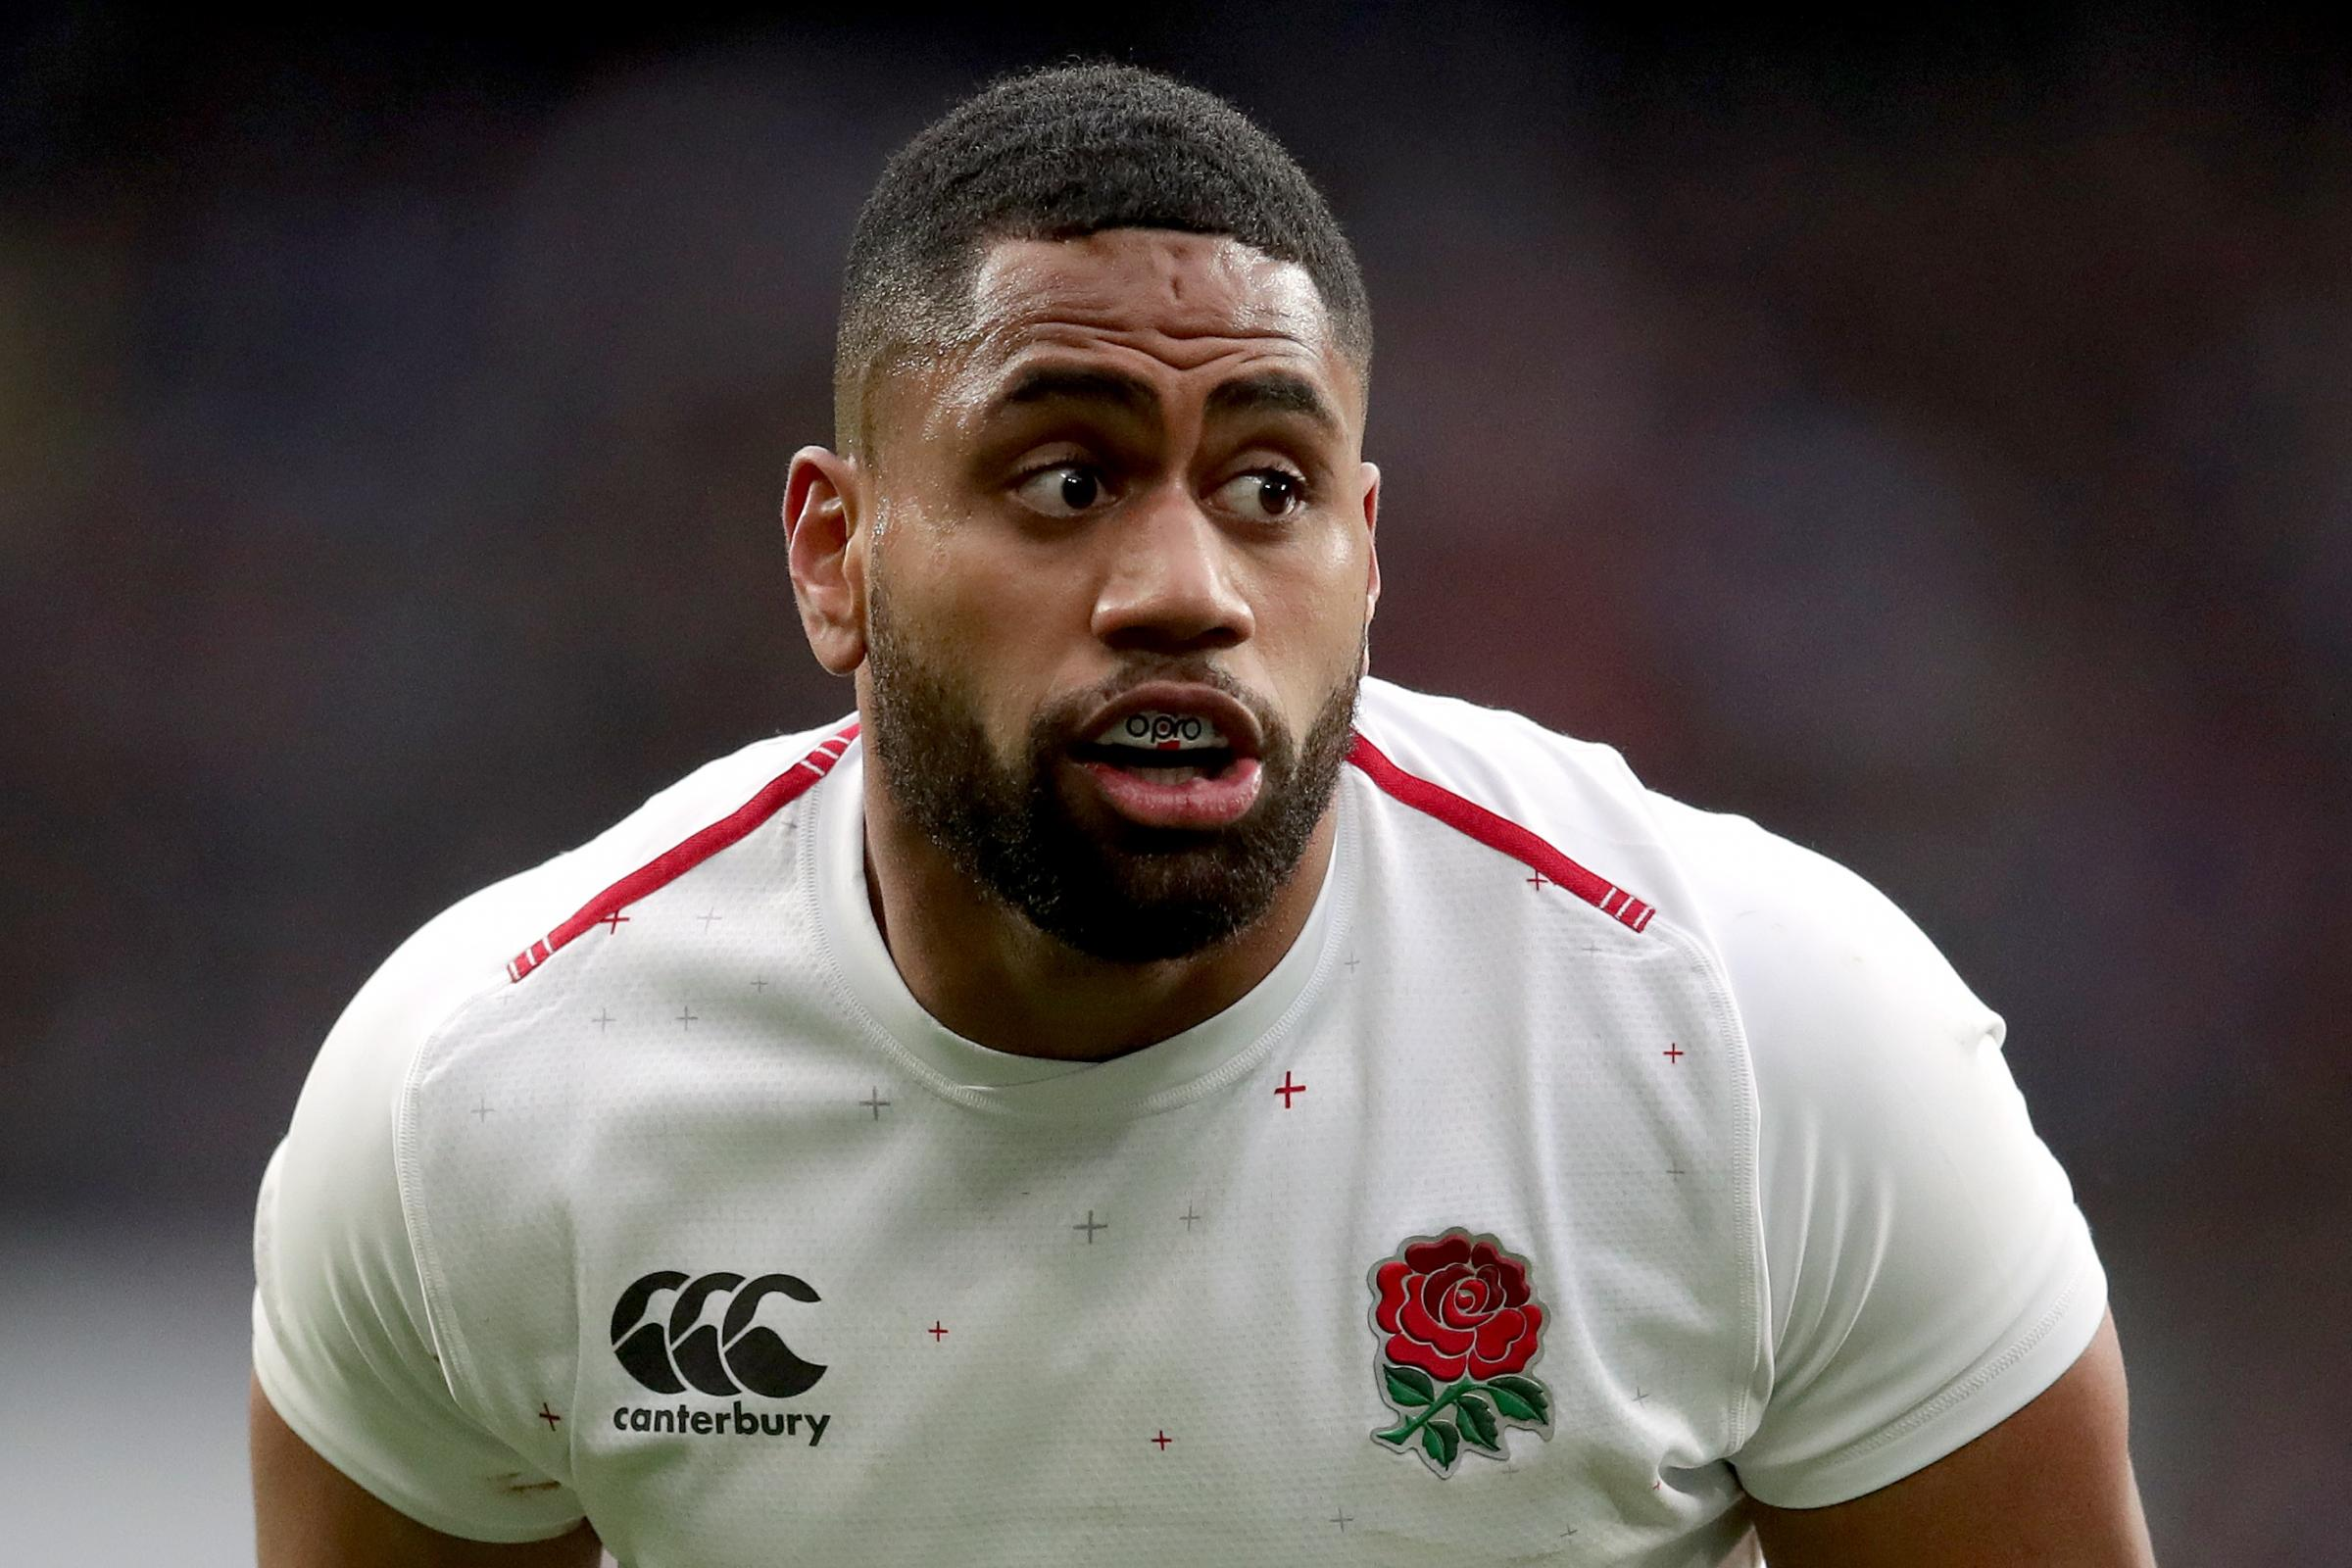 Joe Cokanasiga will play no part against Scotland